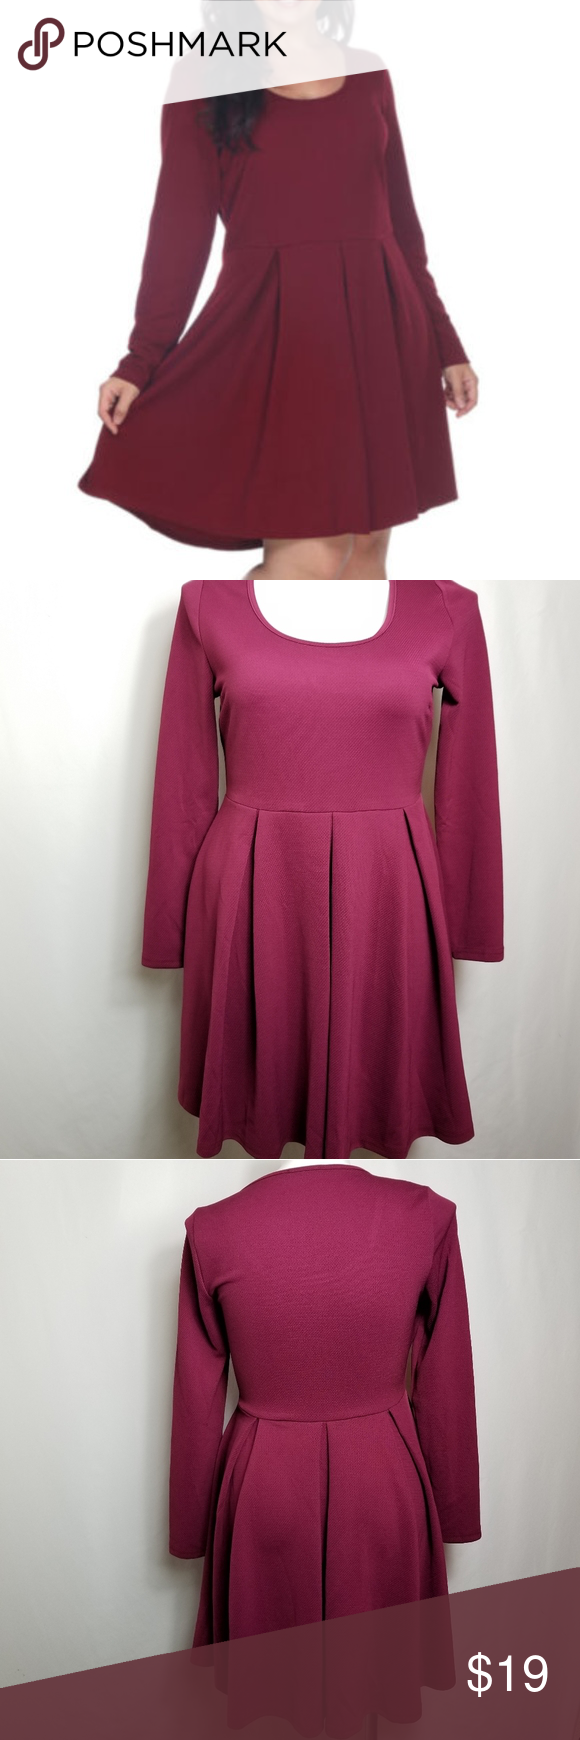 White Mark Burgundy Long Sleeve Fit Flare Dress White Mark Burgundy Long Sleeve Fit Flare Dress Size Xl Excellent C Fit Flare Dress Clothes Design Fashion [ 1740 x 580 Pixel ]